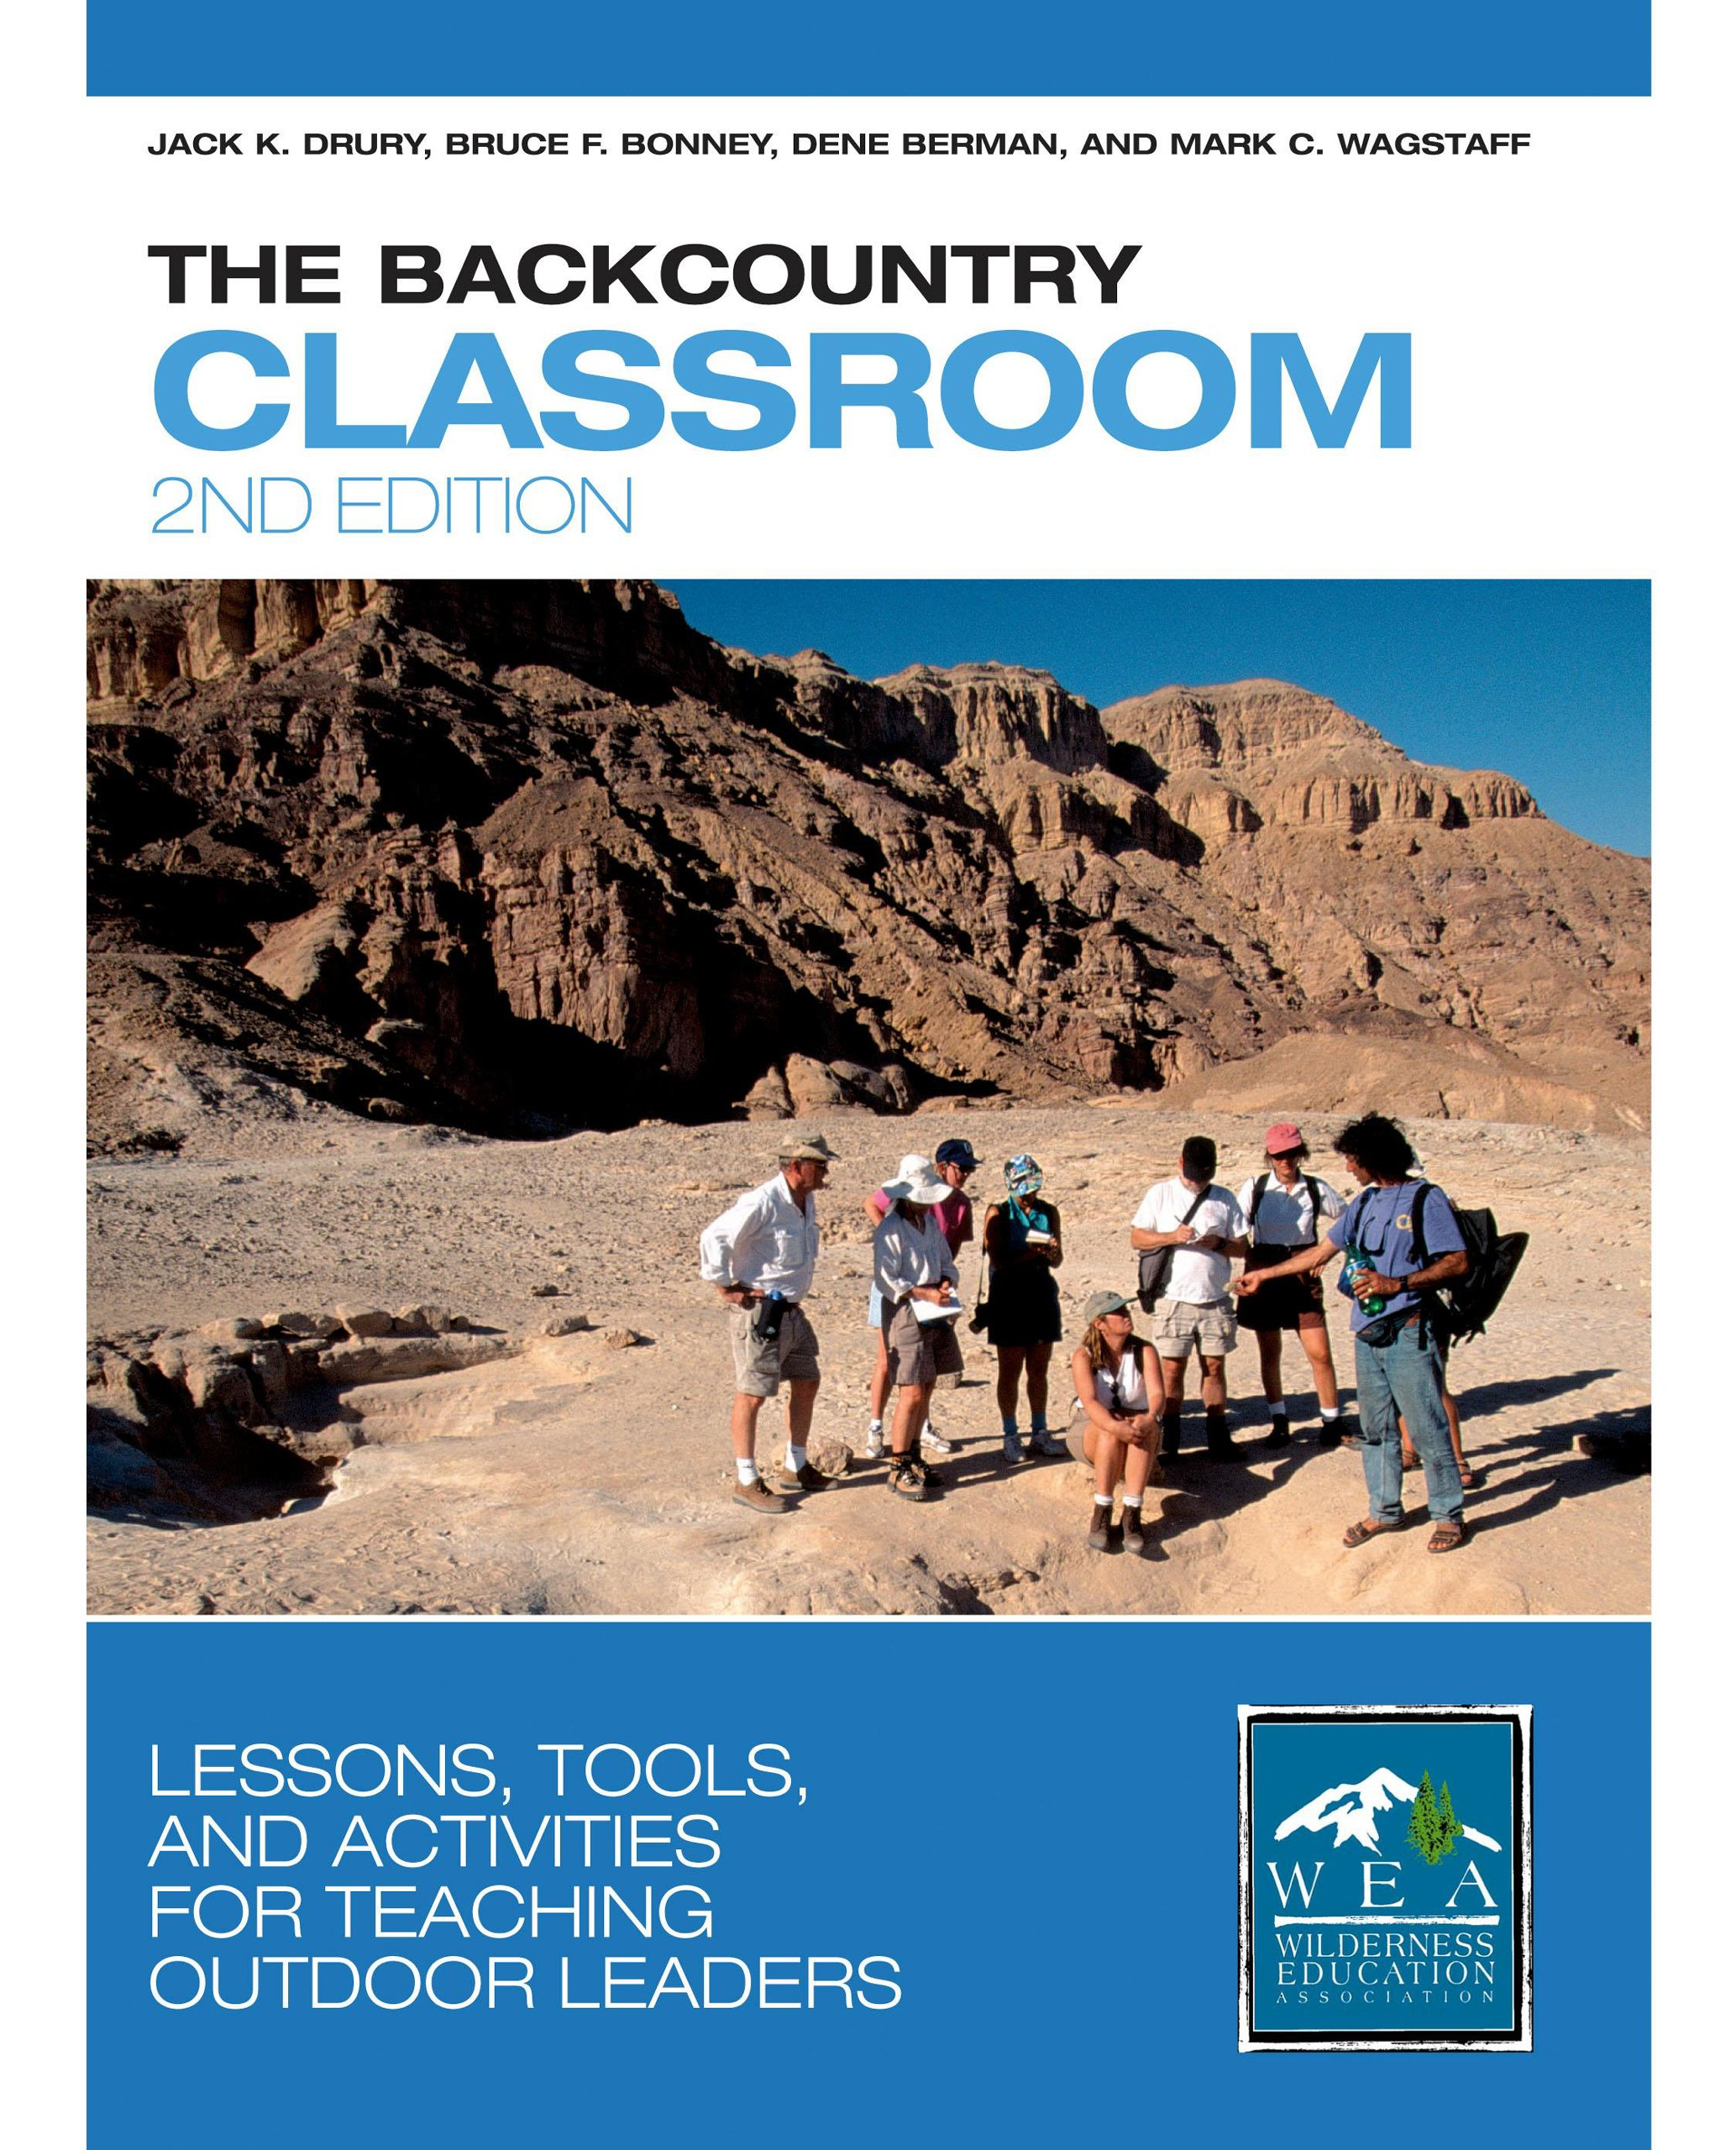 The Backcountry Classroom: Lessons, Tools, and Activities for Teaching Outdoor Leaders PDF Text fb2 book